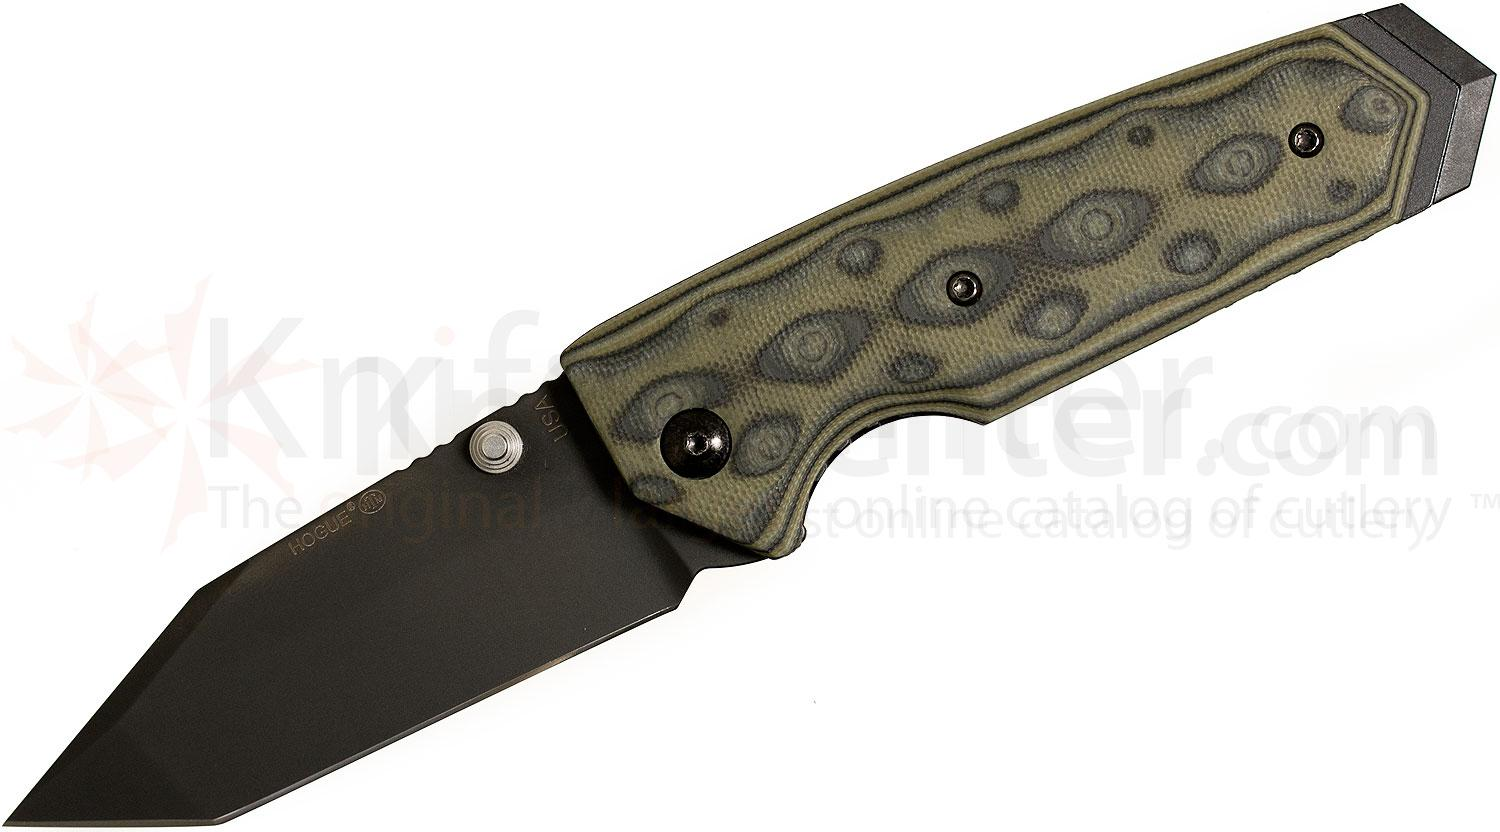 Hogue EX02 3.375 inch Tactical Tanto Blade with G-Mascus Green G-10 Handles